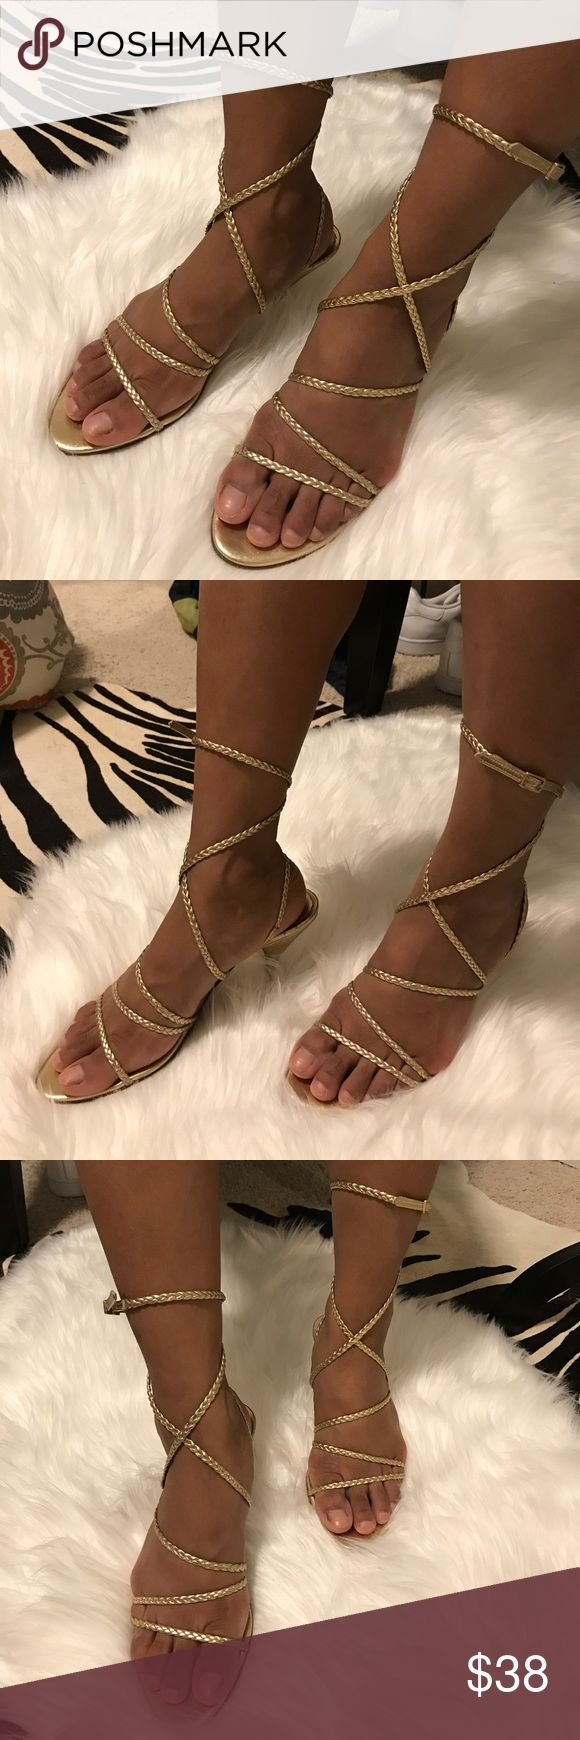 """ANNE KLEIN Gold braided strappy kitten heels Classy, sexy gold kitten heels. Dainty gold braided straps that wrap up around the ankle or can be worn lower loosely wrapped also. Kitten heels measure 3.5"""". Bottoms show some wear but tops in great condition. Anne Klein Shoes Heels"""